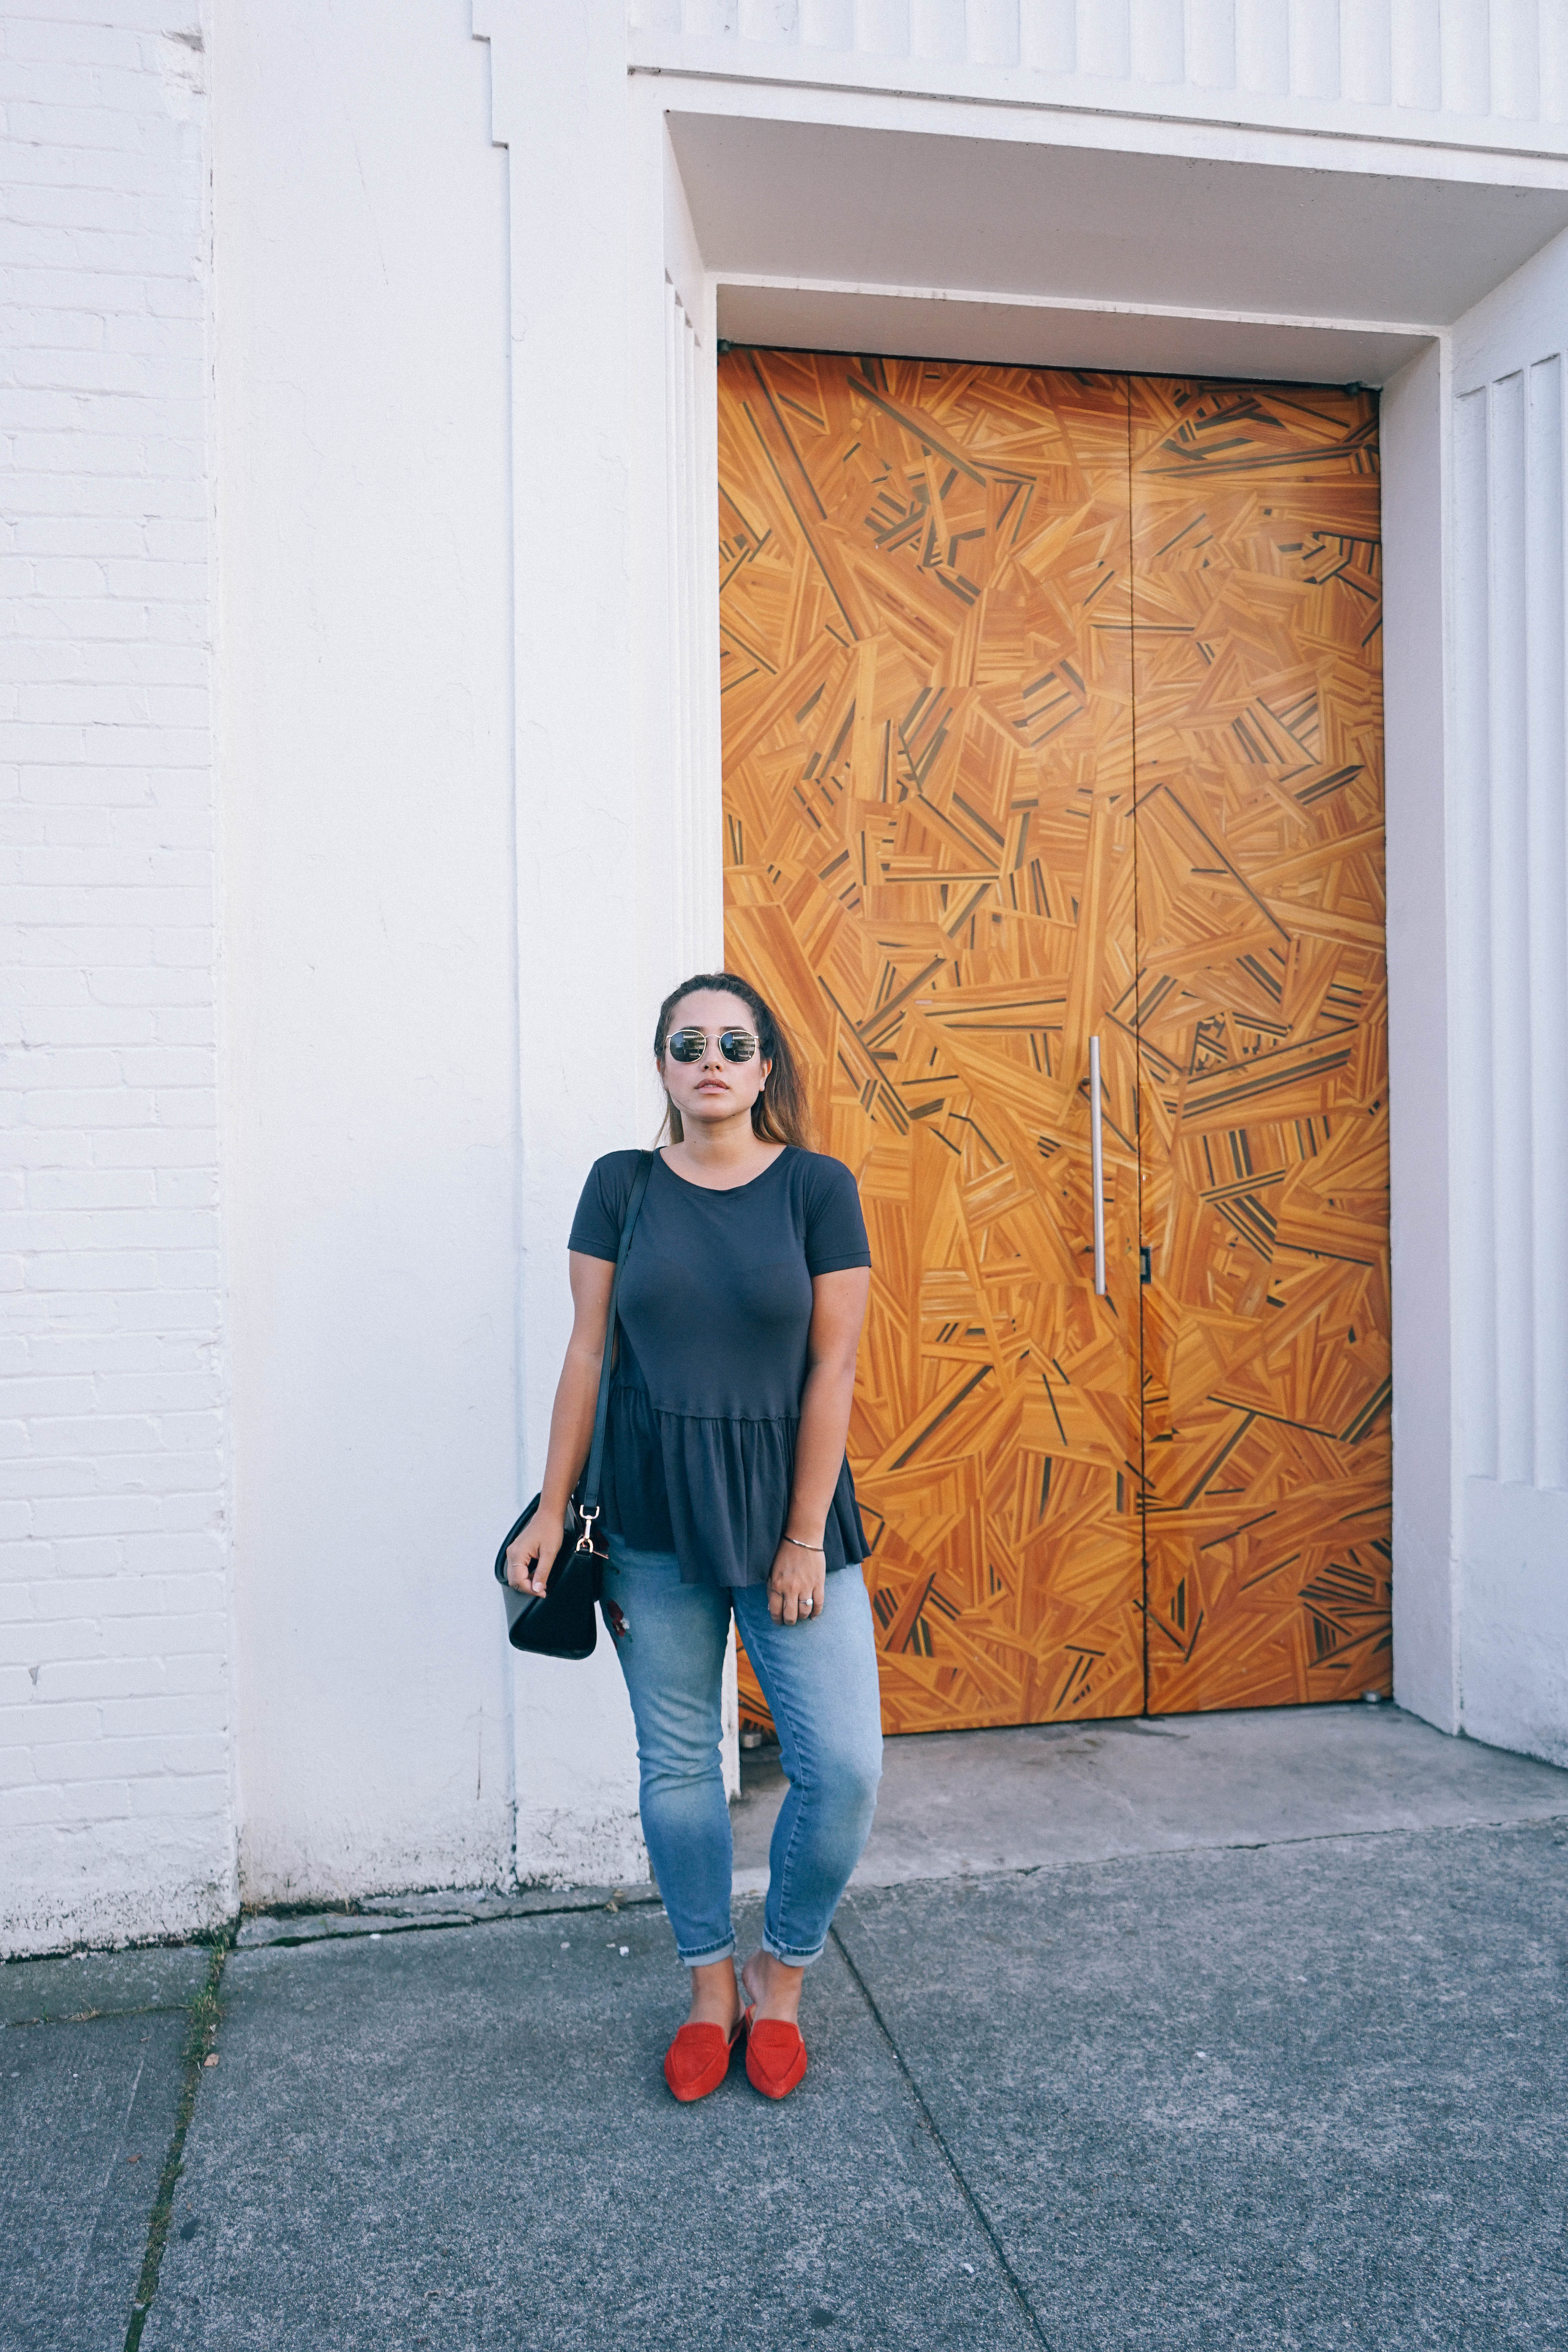 6baf1180 Adriana Embroidered Ankle Skinny Jeans c/o Mavi Peplum T-Shit from Urban  Outfitters · Franco Sarto Mules from Nordstrom Rack